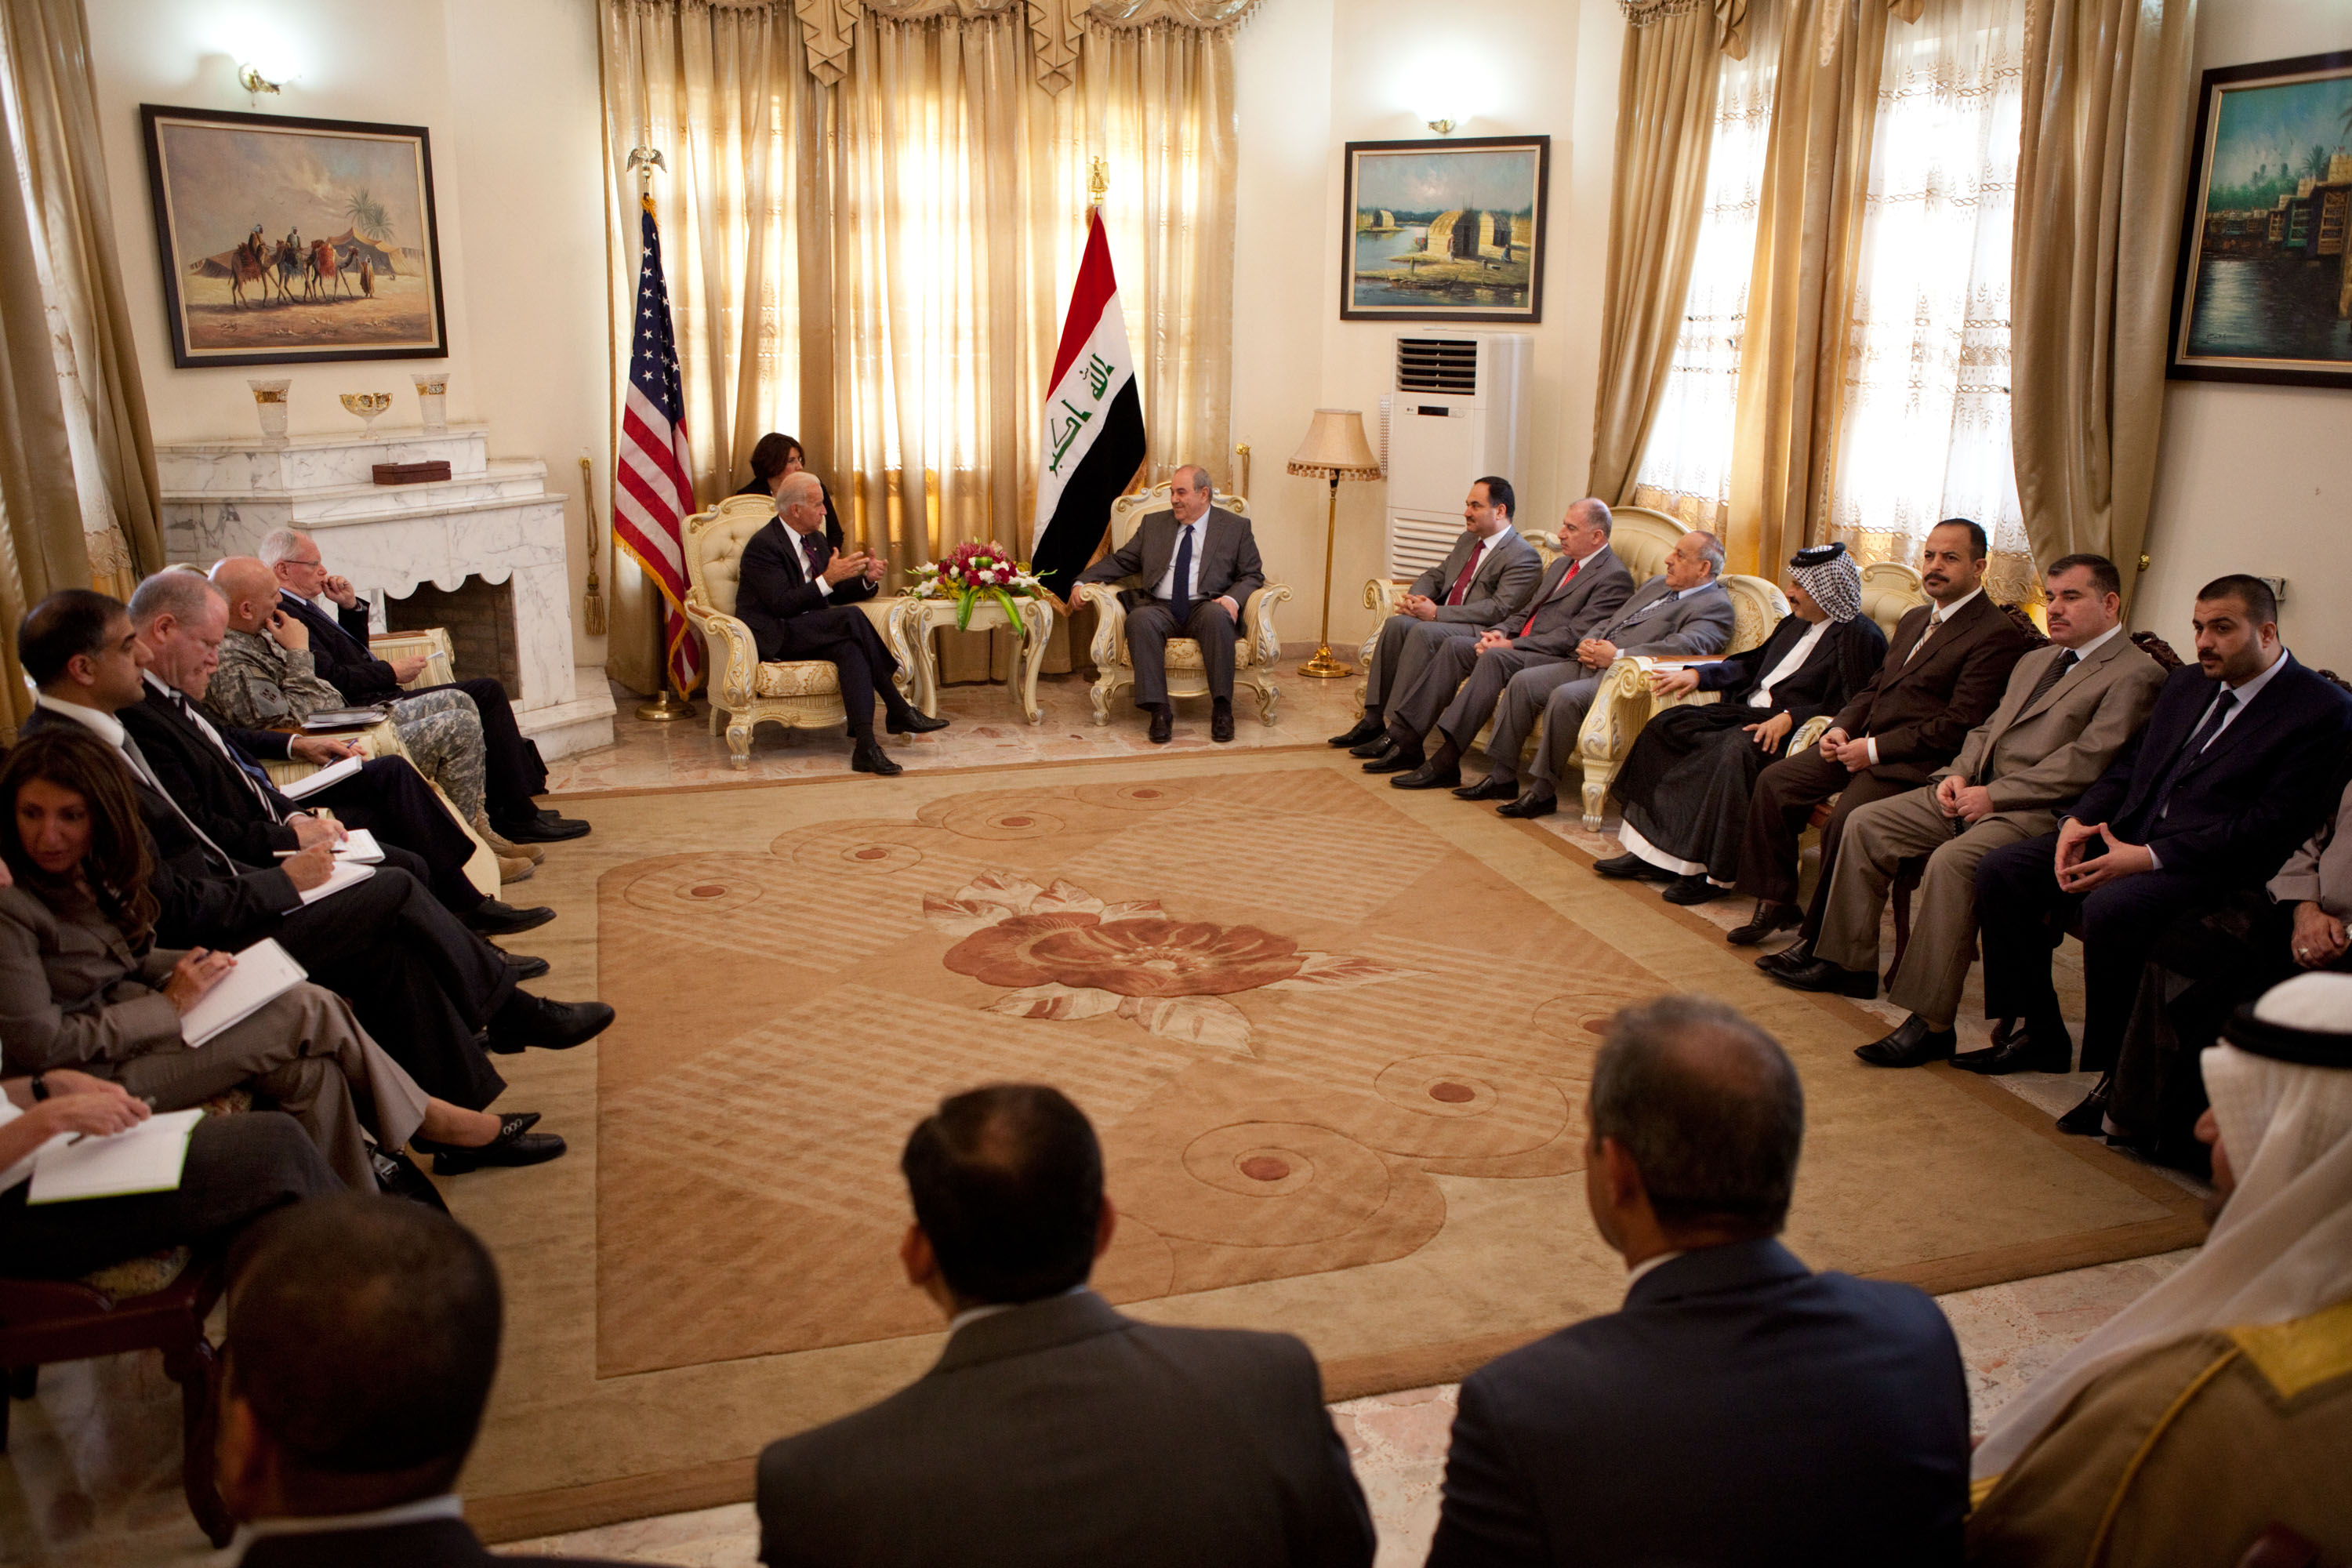 Vice President Joe Biden Meets with Ayad Allawi at Iraqi Deputy Prime Minister Issawi's Home in Baghdad, Iraq